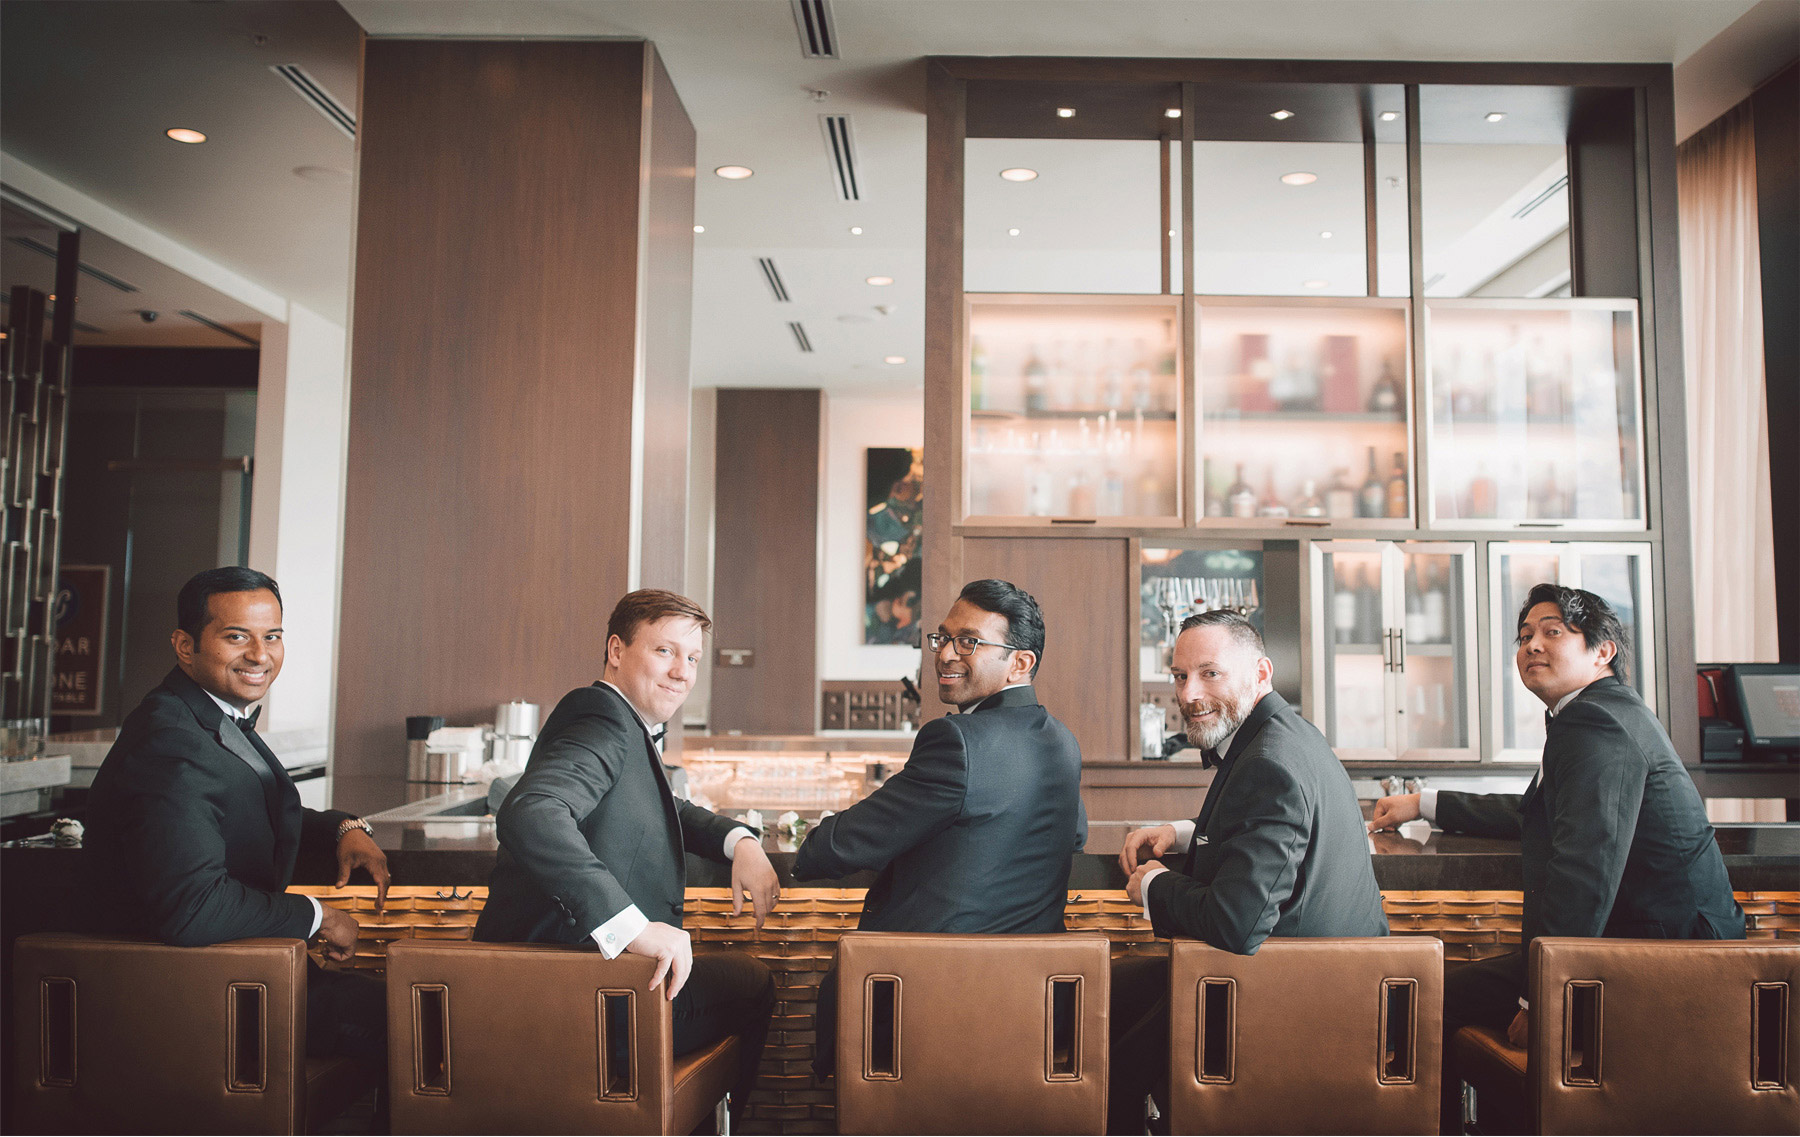 01-Bloomington-Minneapolis-Minnesota-Wedding-Photographer-by-Andrew-Vick-Photography-JW-Marriott-Mall-of-America-MOA-Spring-Groom-Groomsmen-Bar-Hotel-Vintage-Rachel-and-Venu.jpg